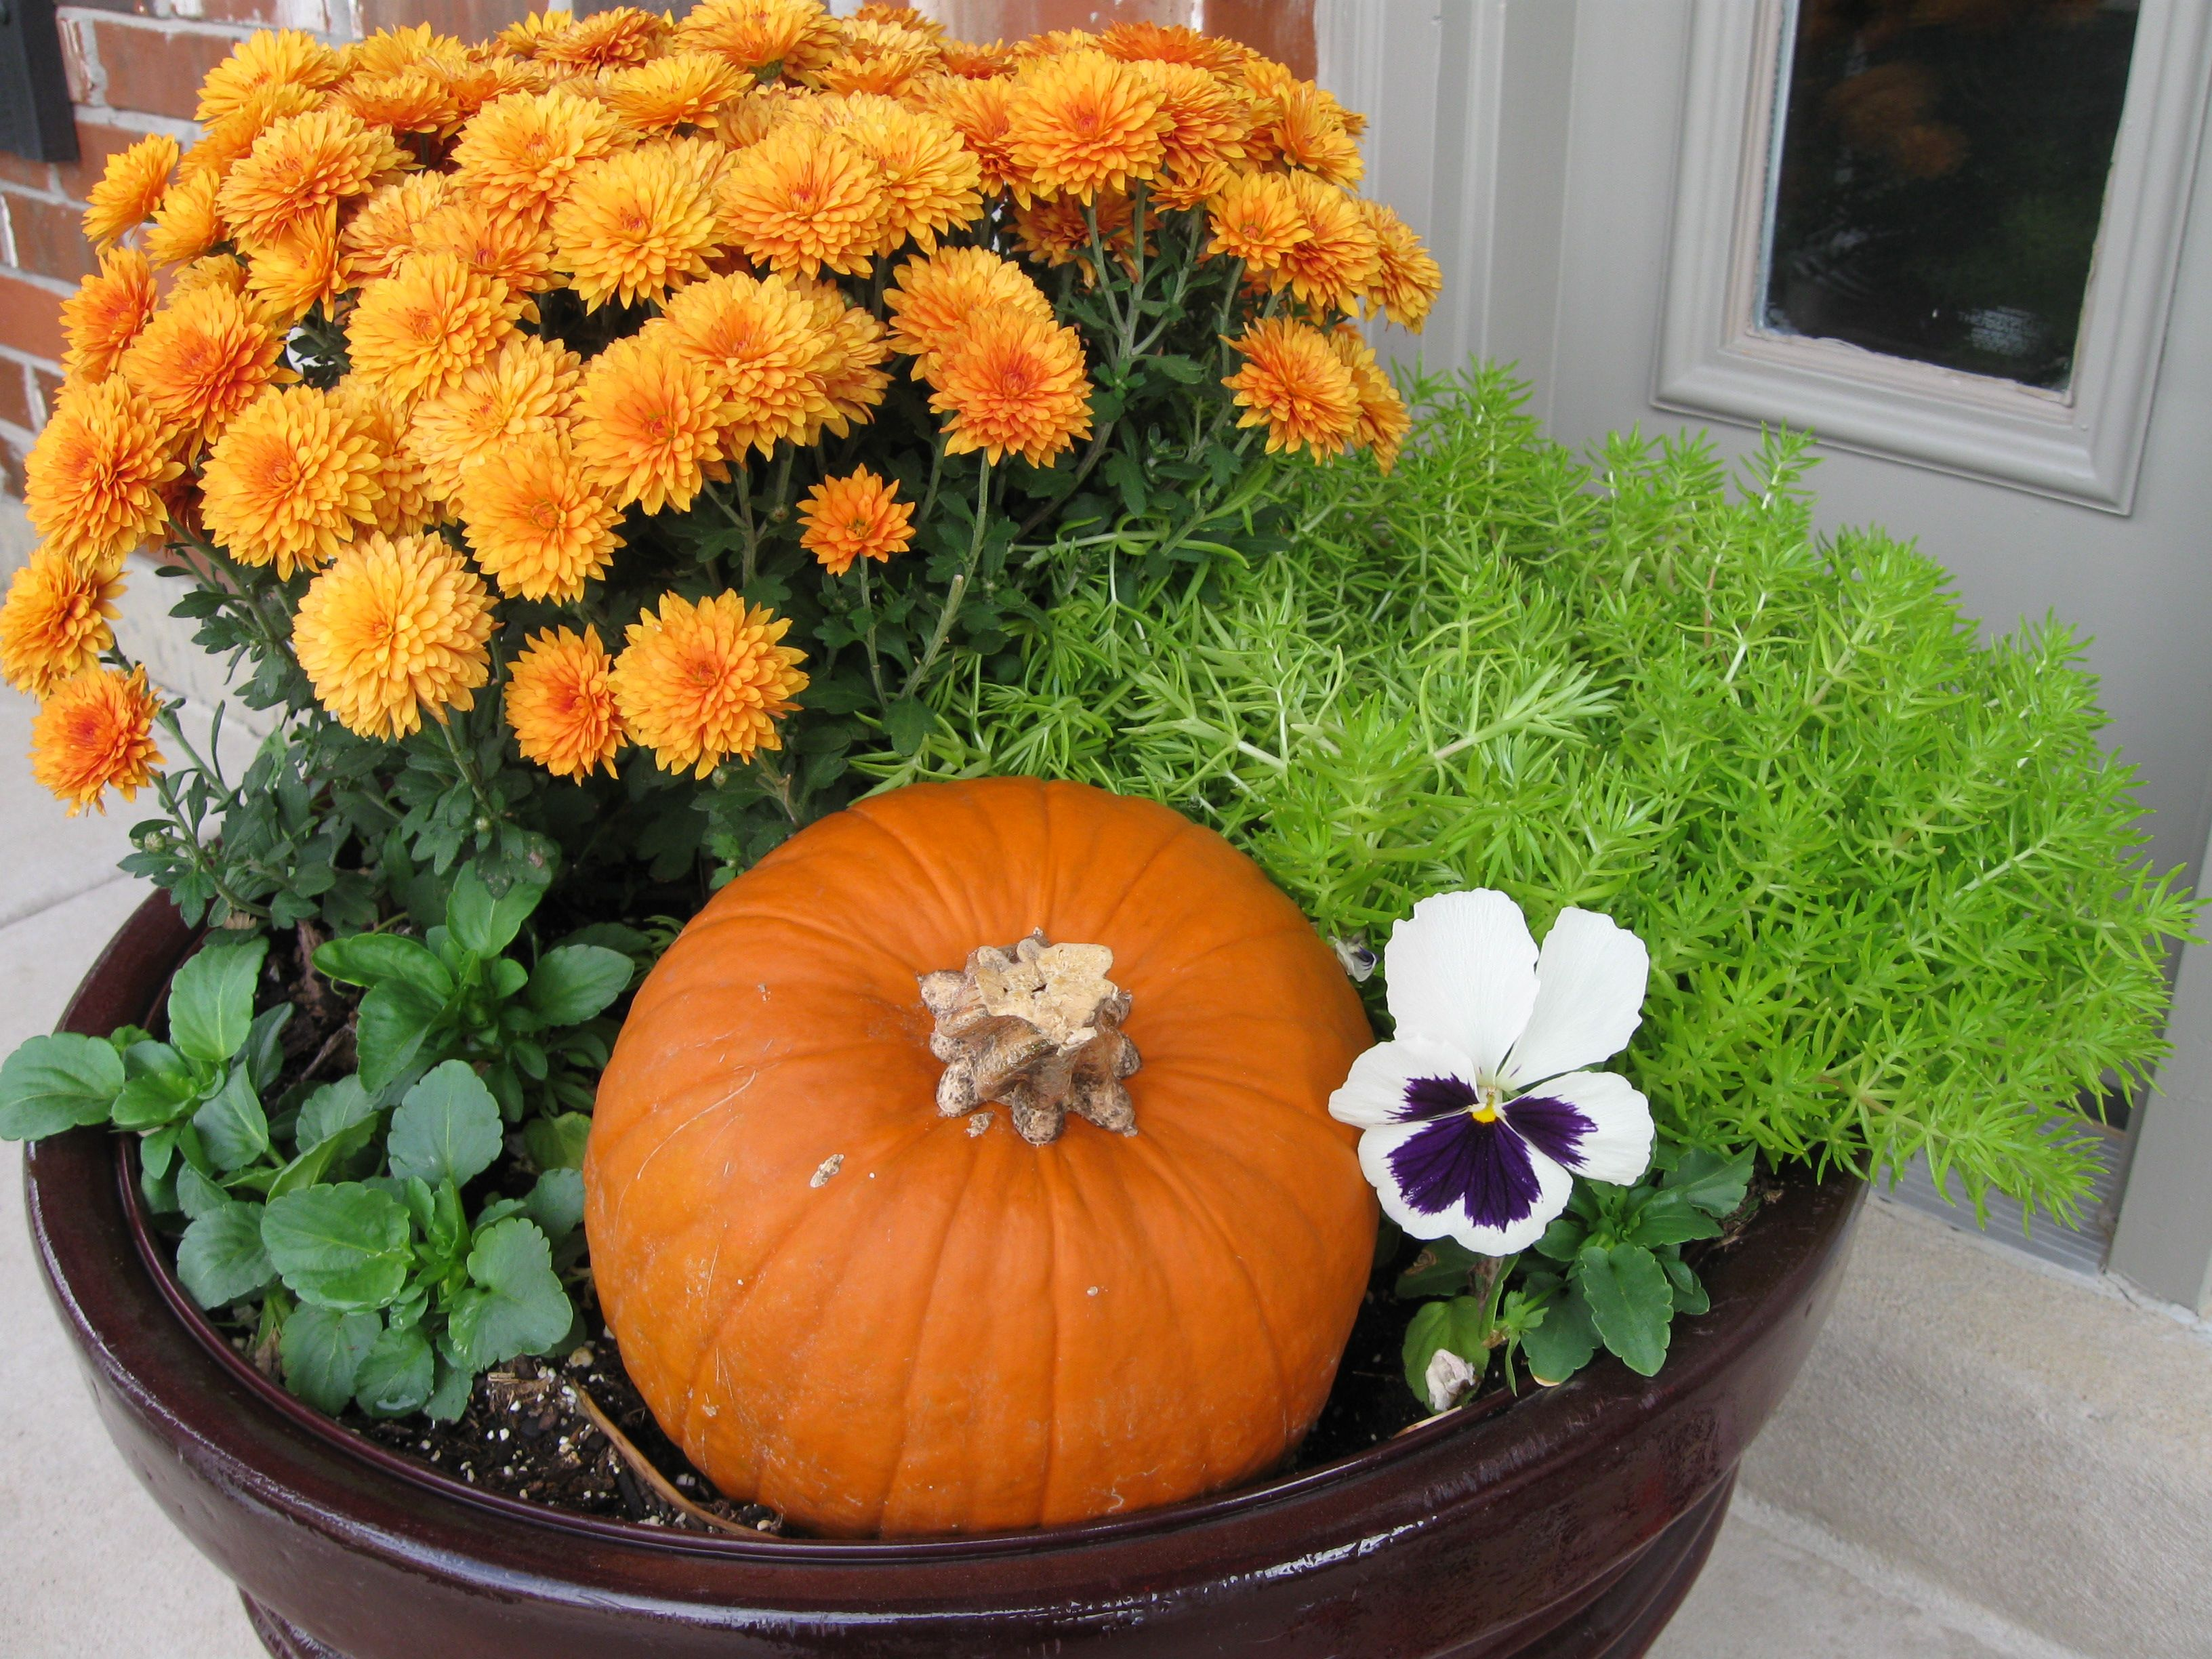 My front porch planter last Fall - it was beautiful!